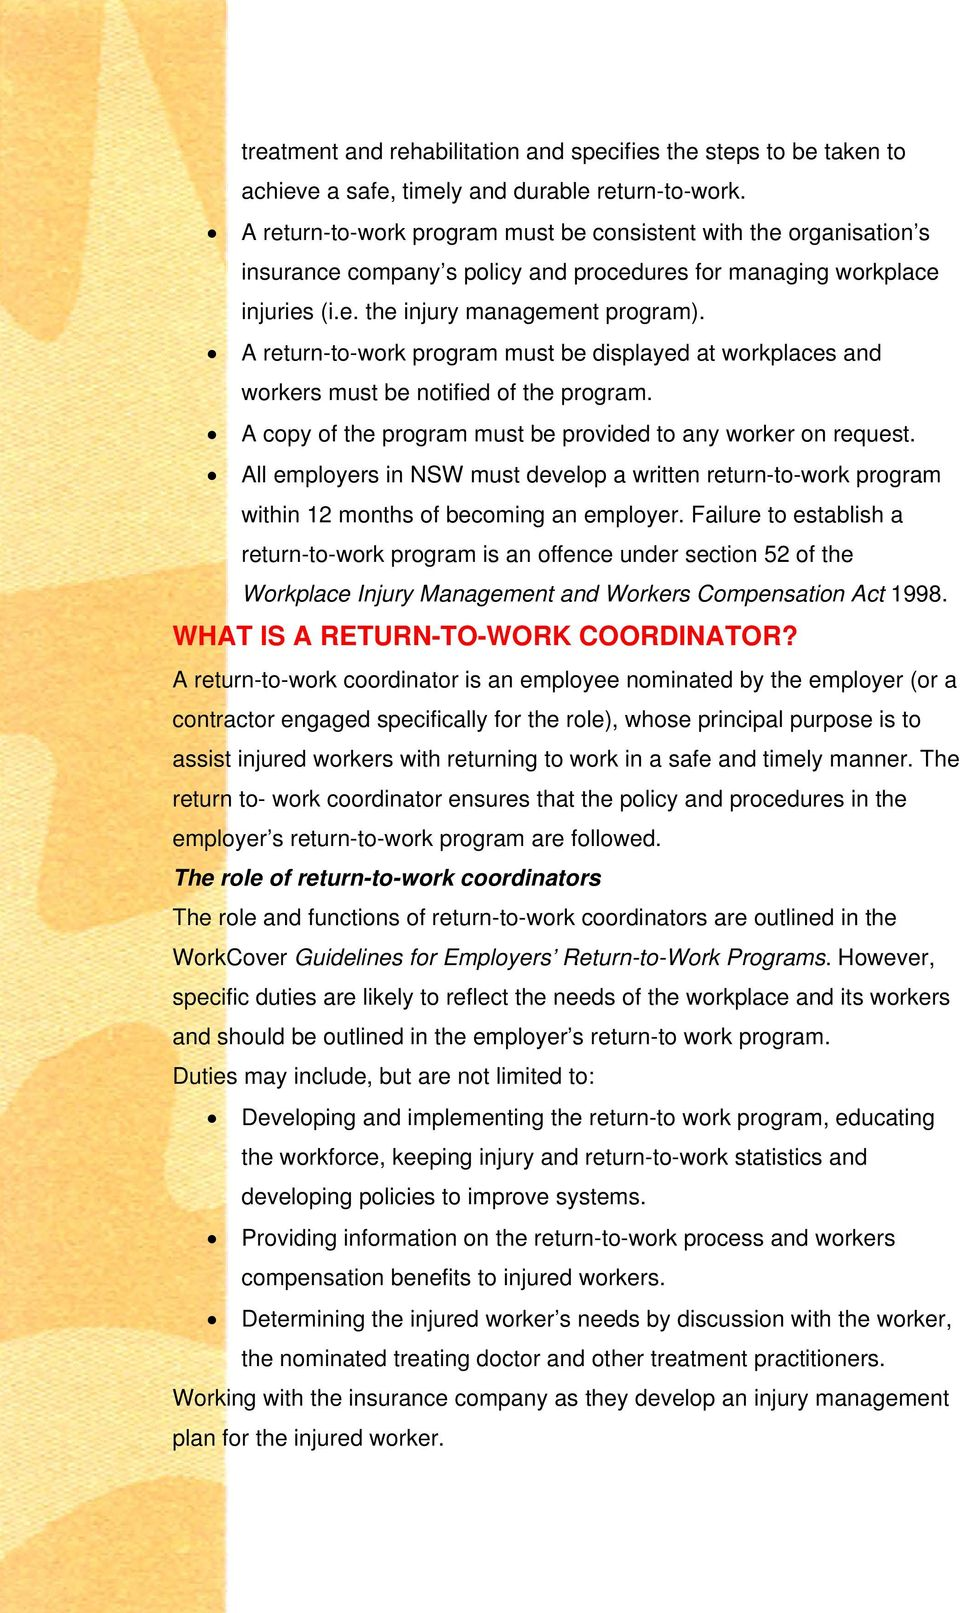 A return-to-work program must be displayed at workplaces and workers must be notified of the program. A copy of the program must be provided to any worker on request.